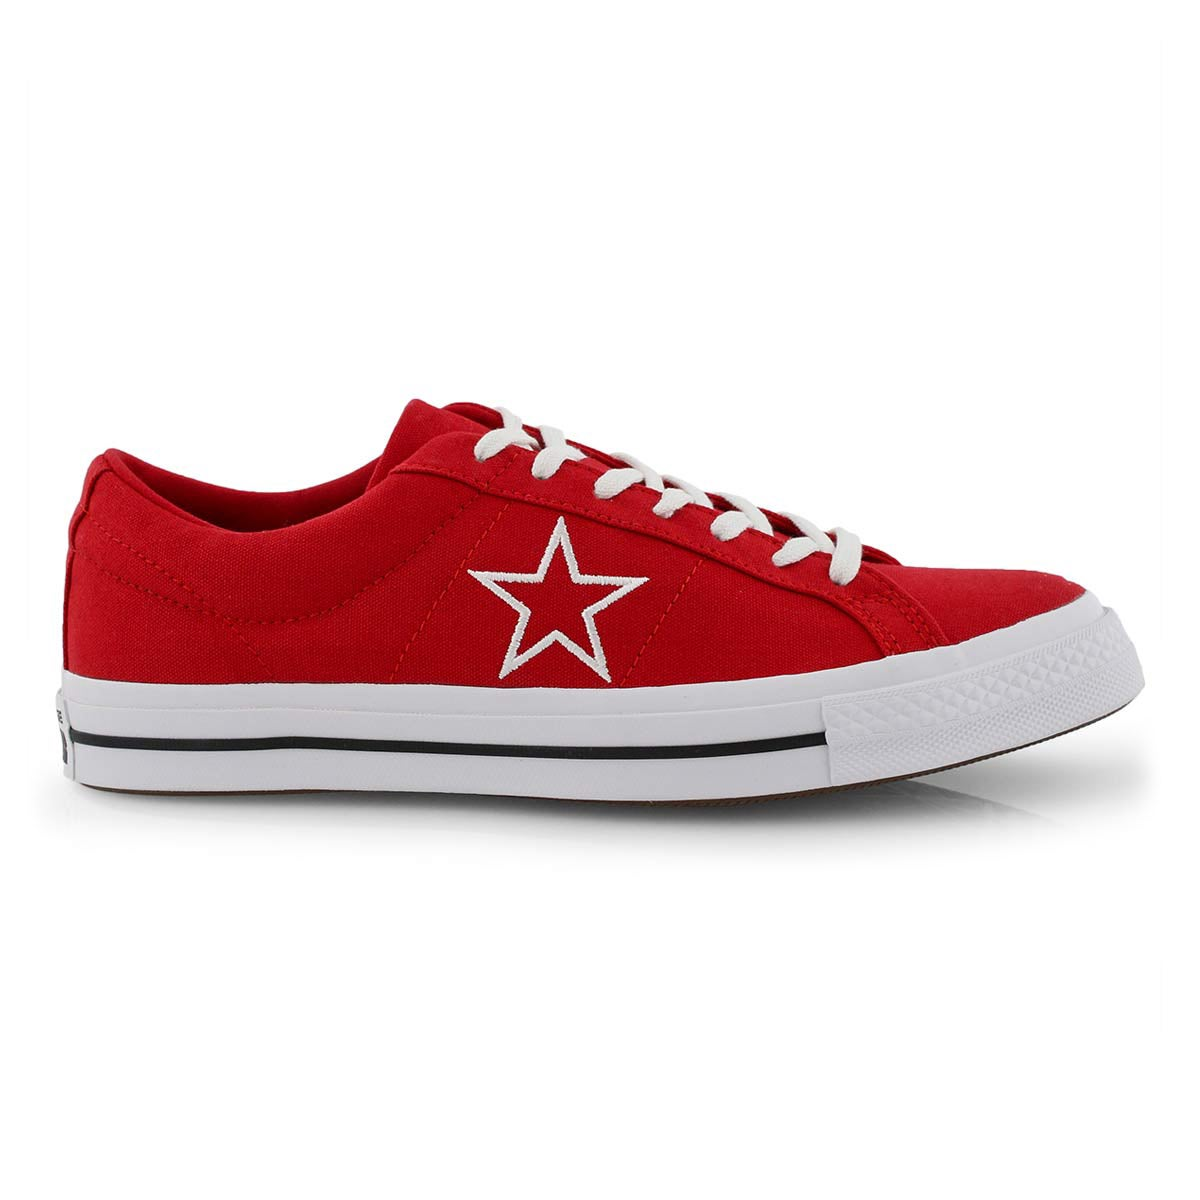 Mns One Star red/wht fashion snkr